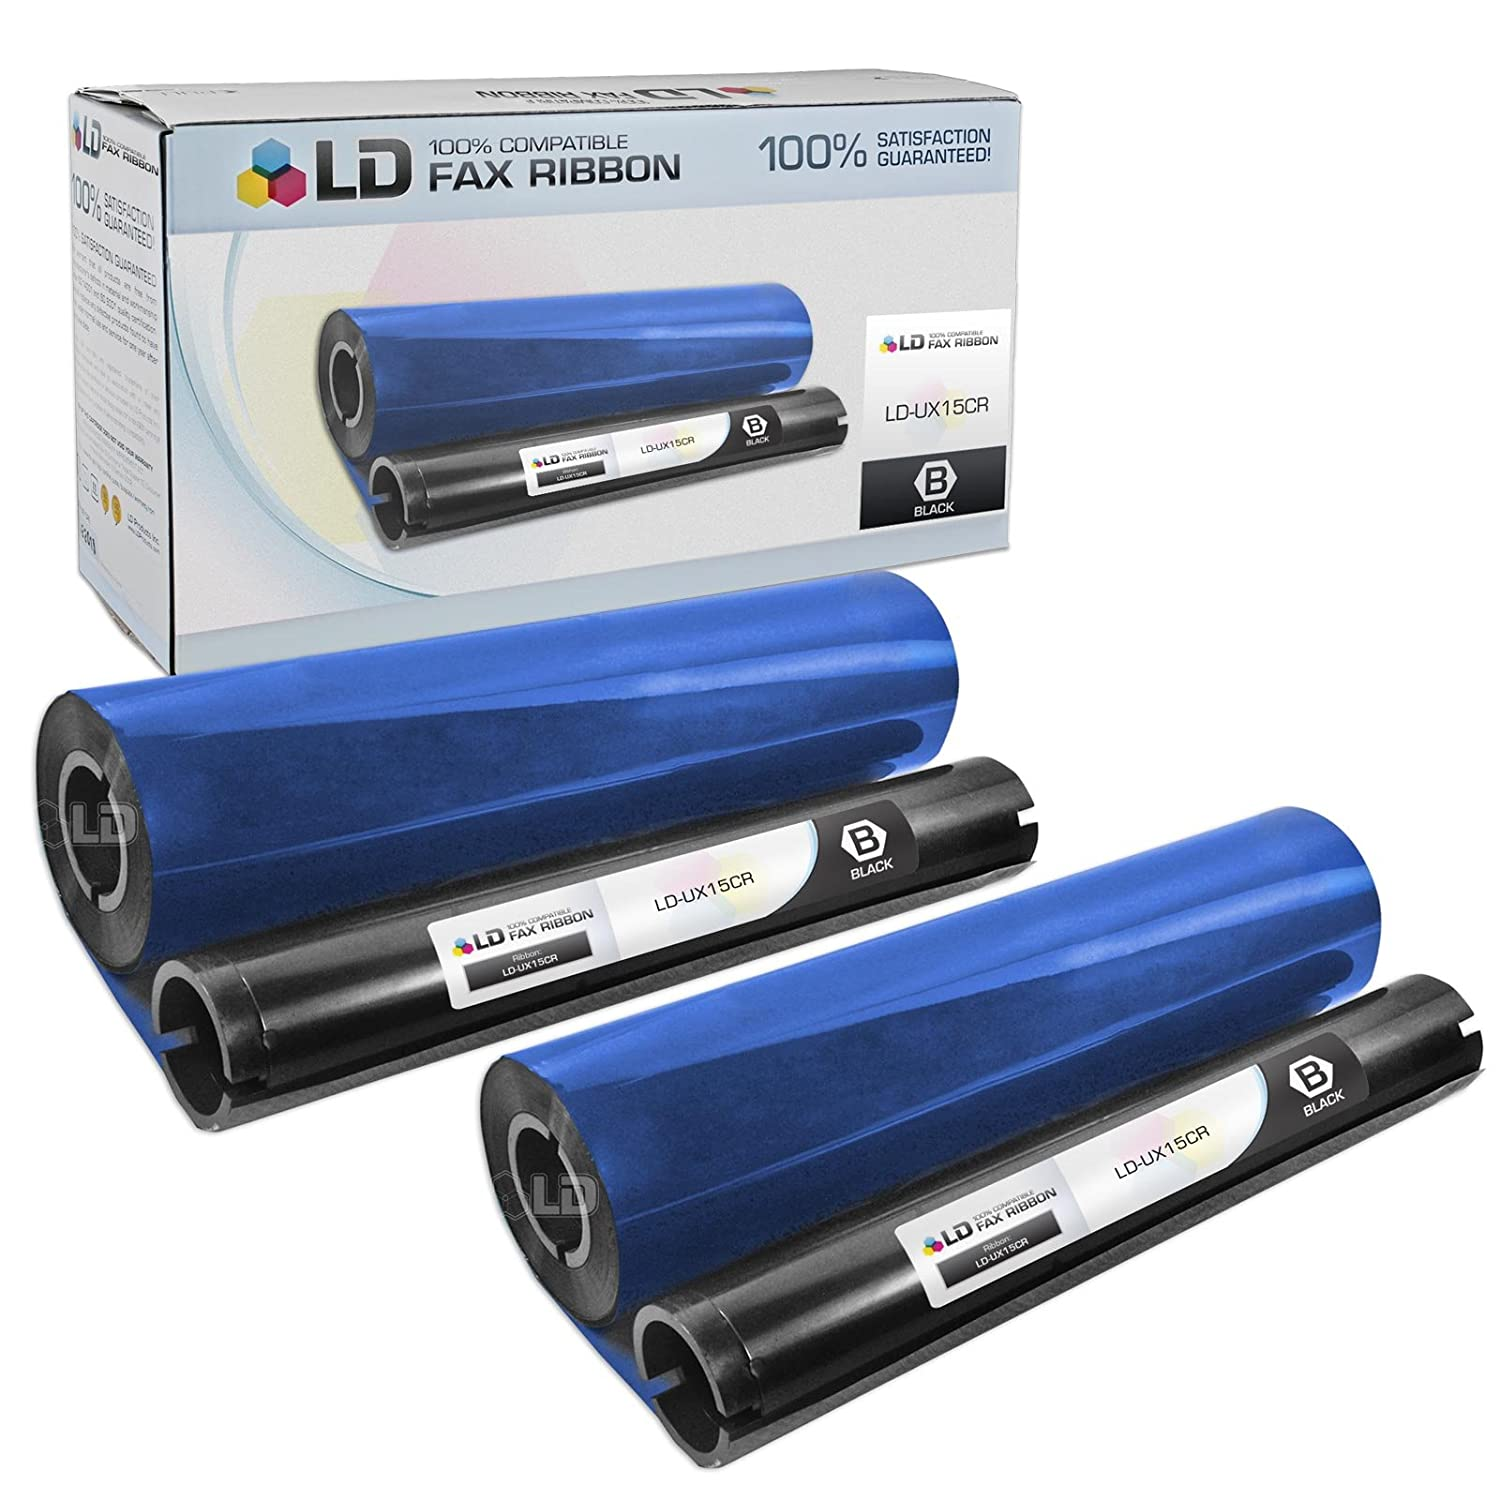 LD Sharp UX-15CR Thermal Compatible Fax Ribbon Refill Rolls (2 - Pack) LD Products UX15CR